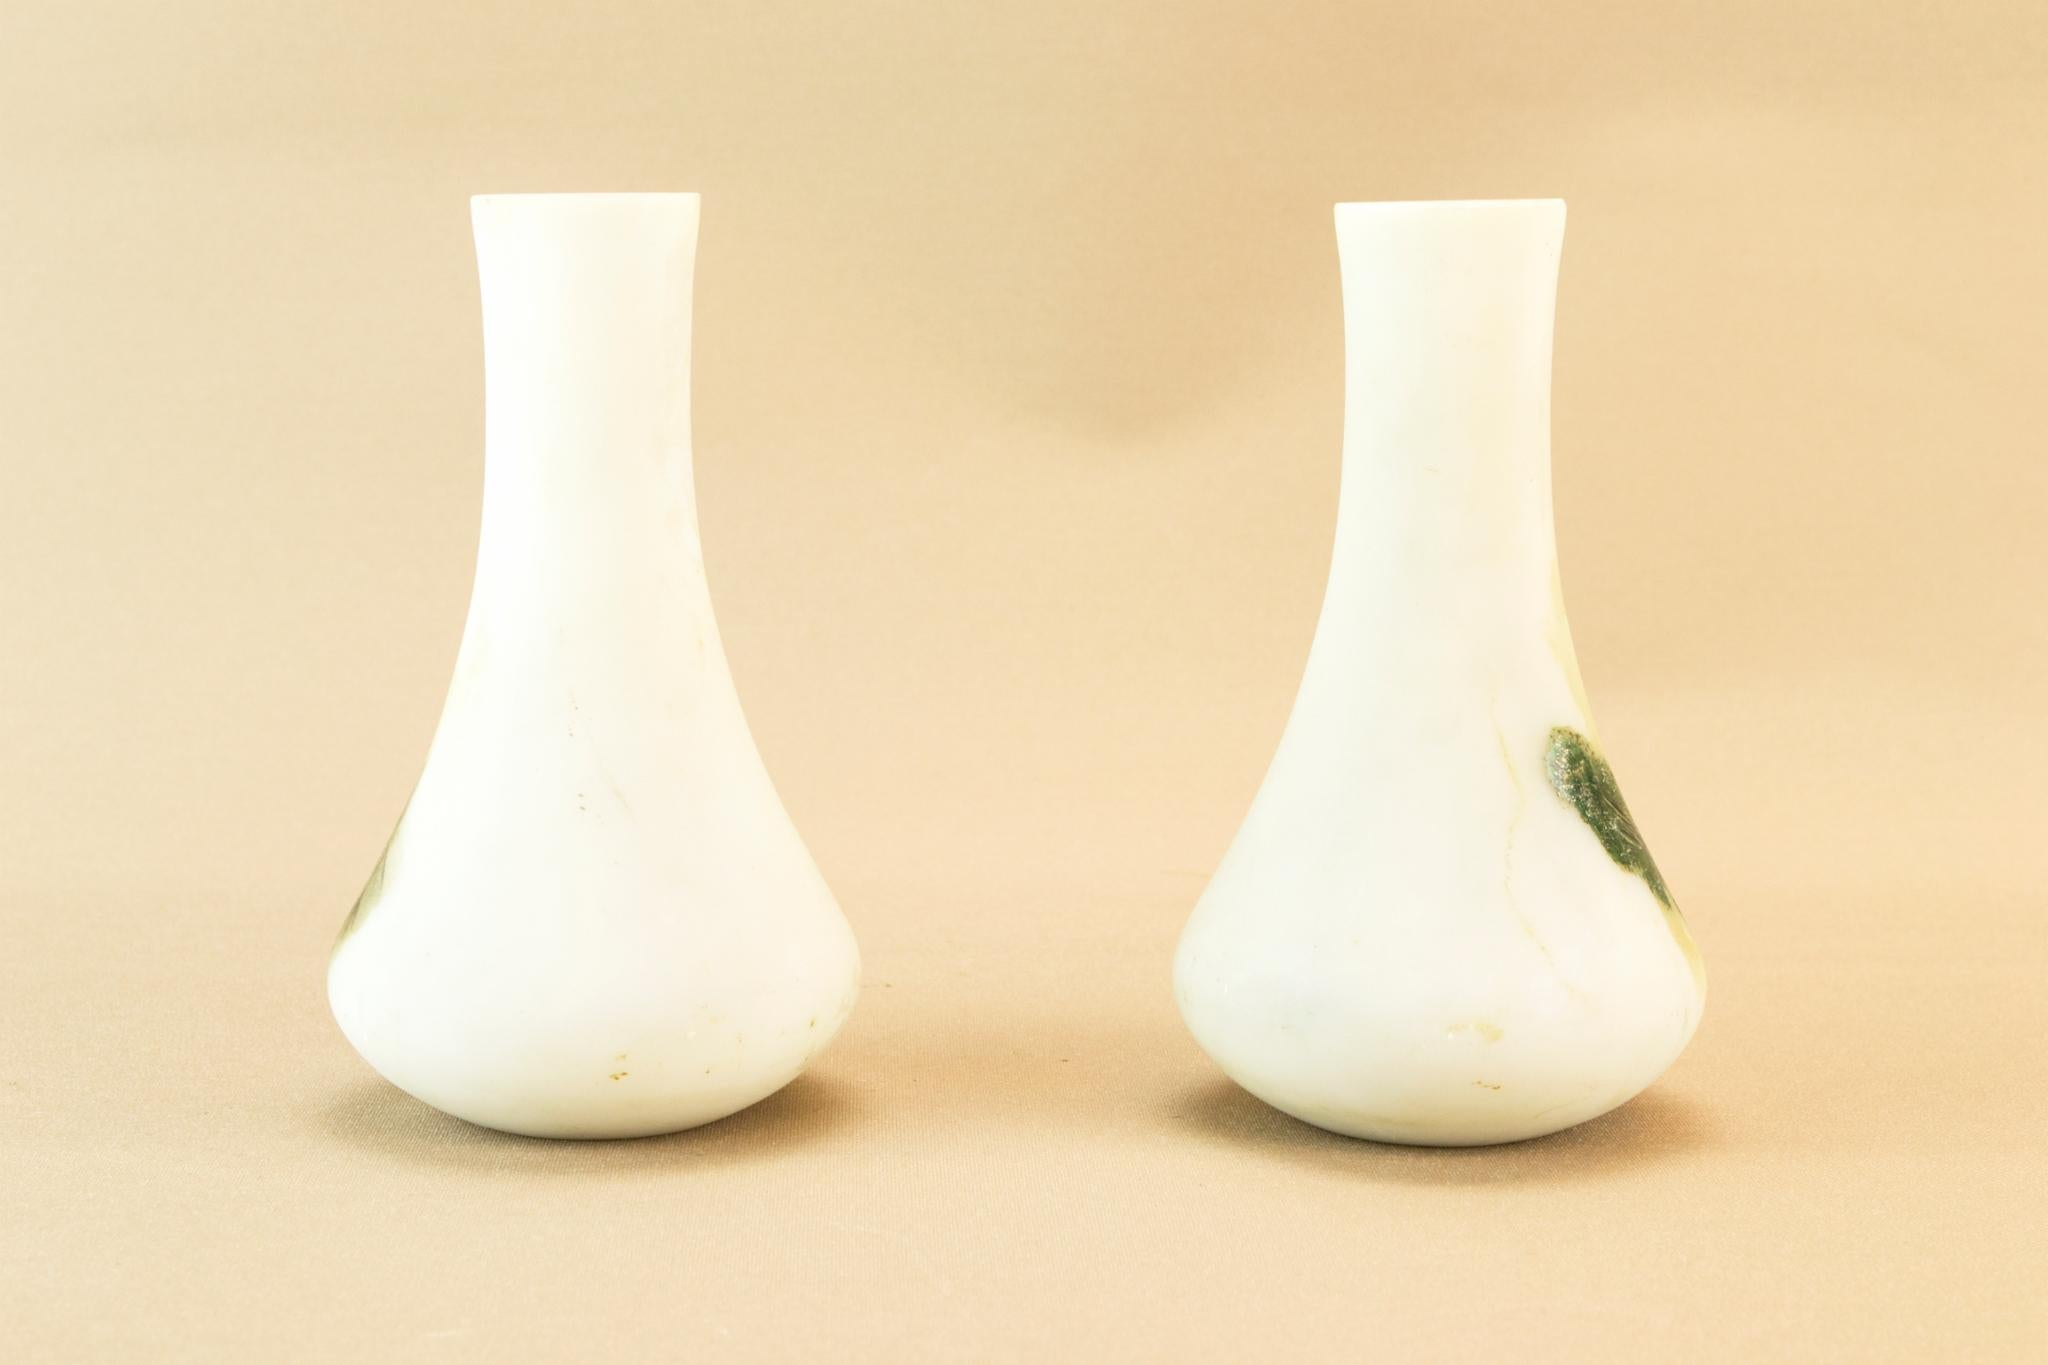 2 small glass vase, English early 1900s